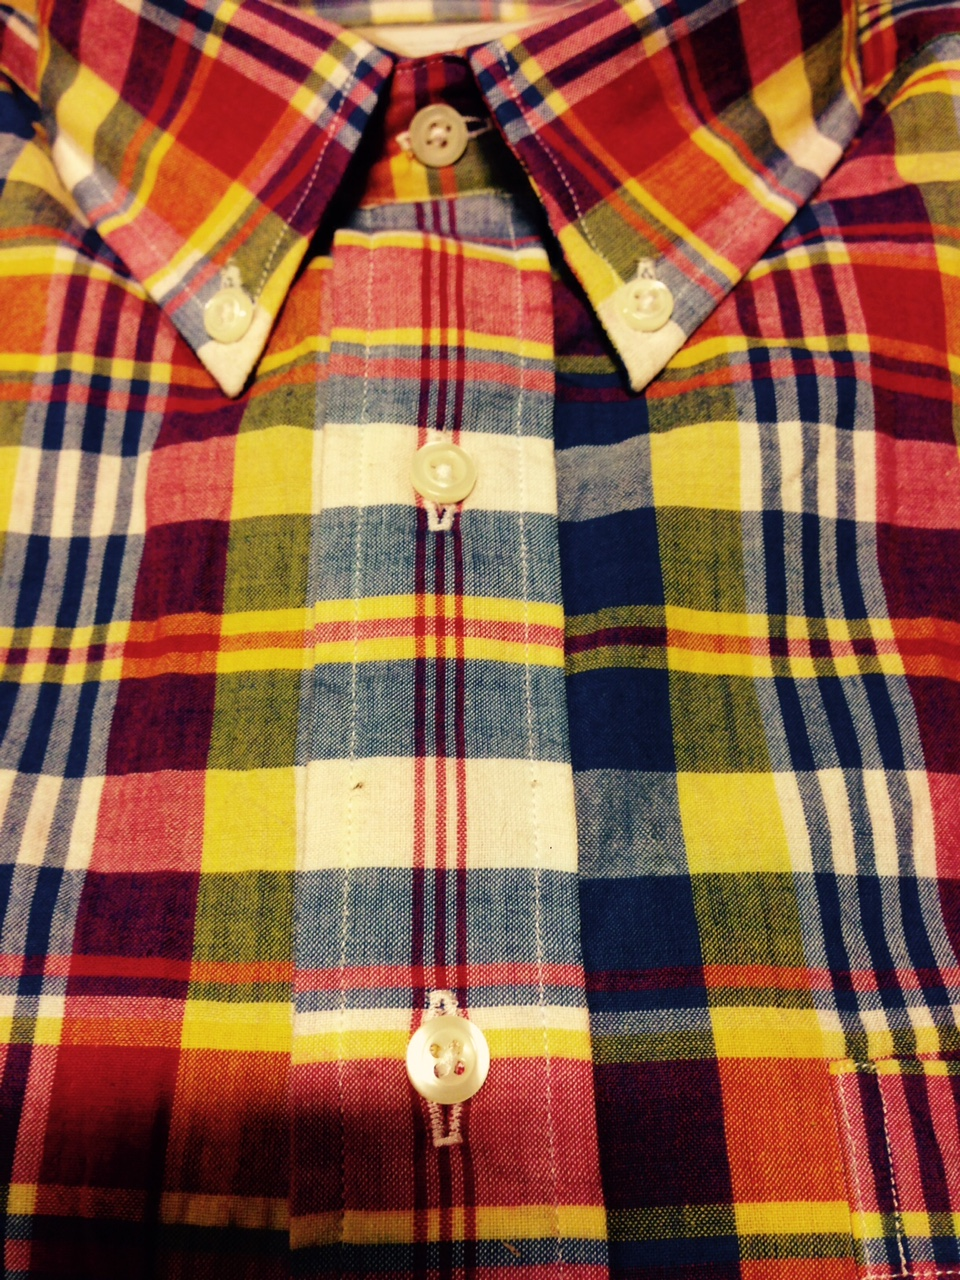 Bled Dry  New David Wood Bleeding Madras Shirts Sell Out Instantly d19afe4f19